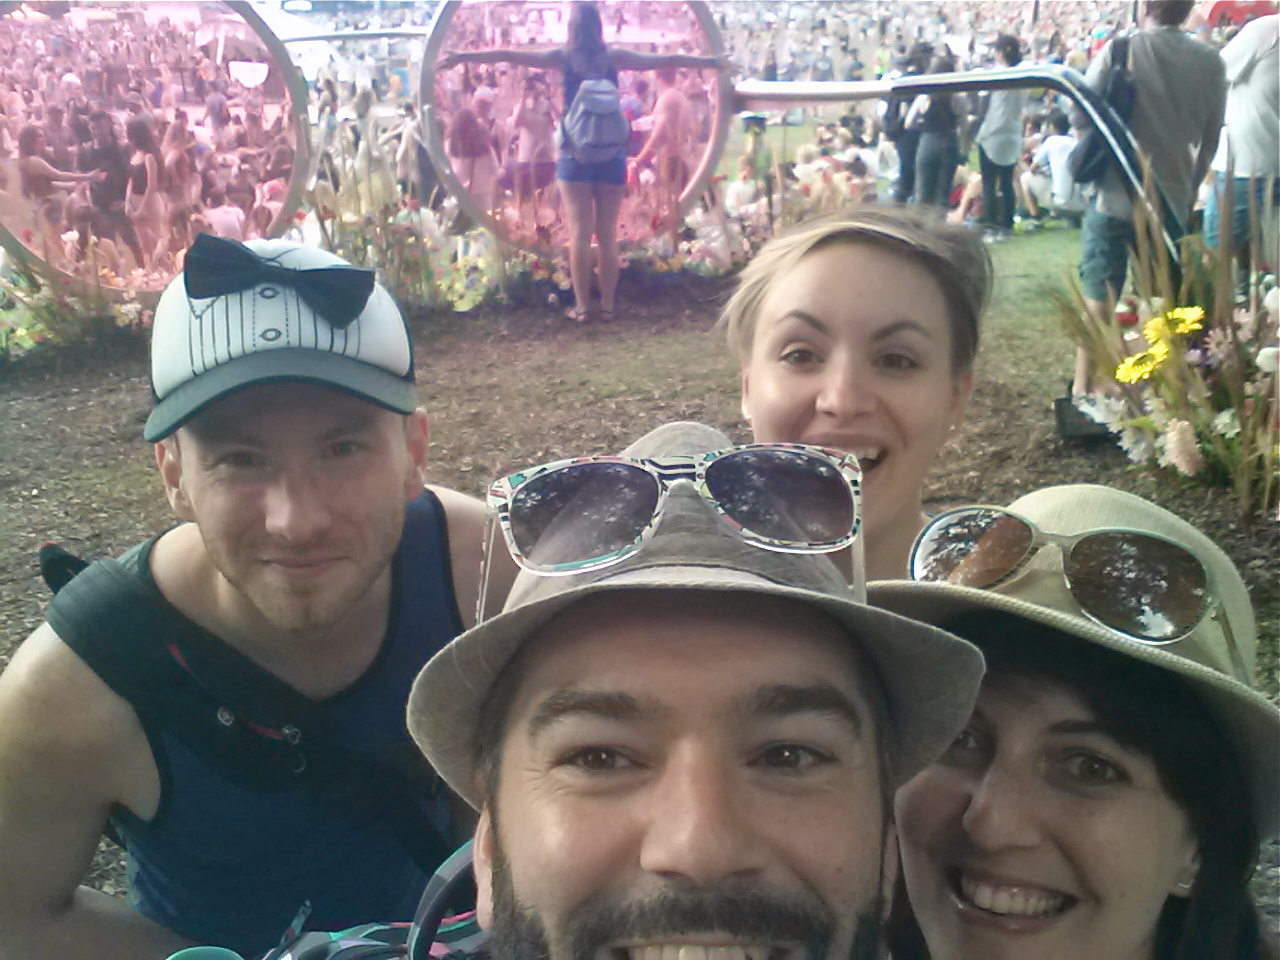 Group selfie in front of Scène de la Vallée and Scène Verte's rose-colored glasses